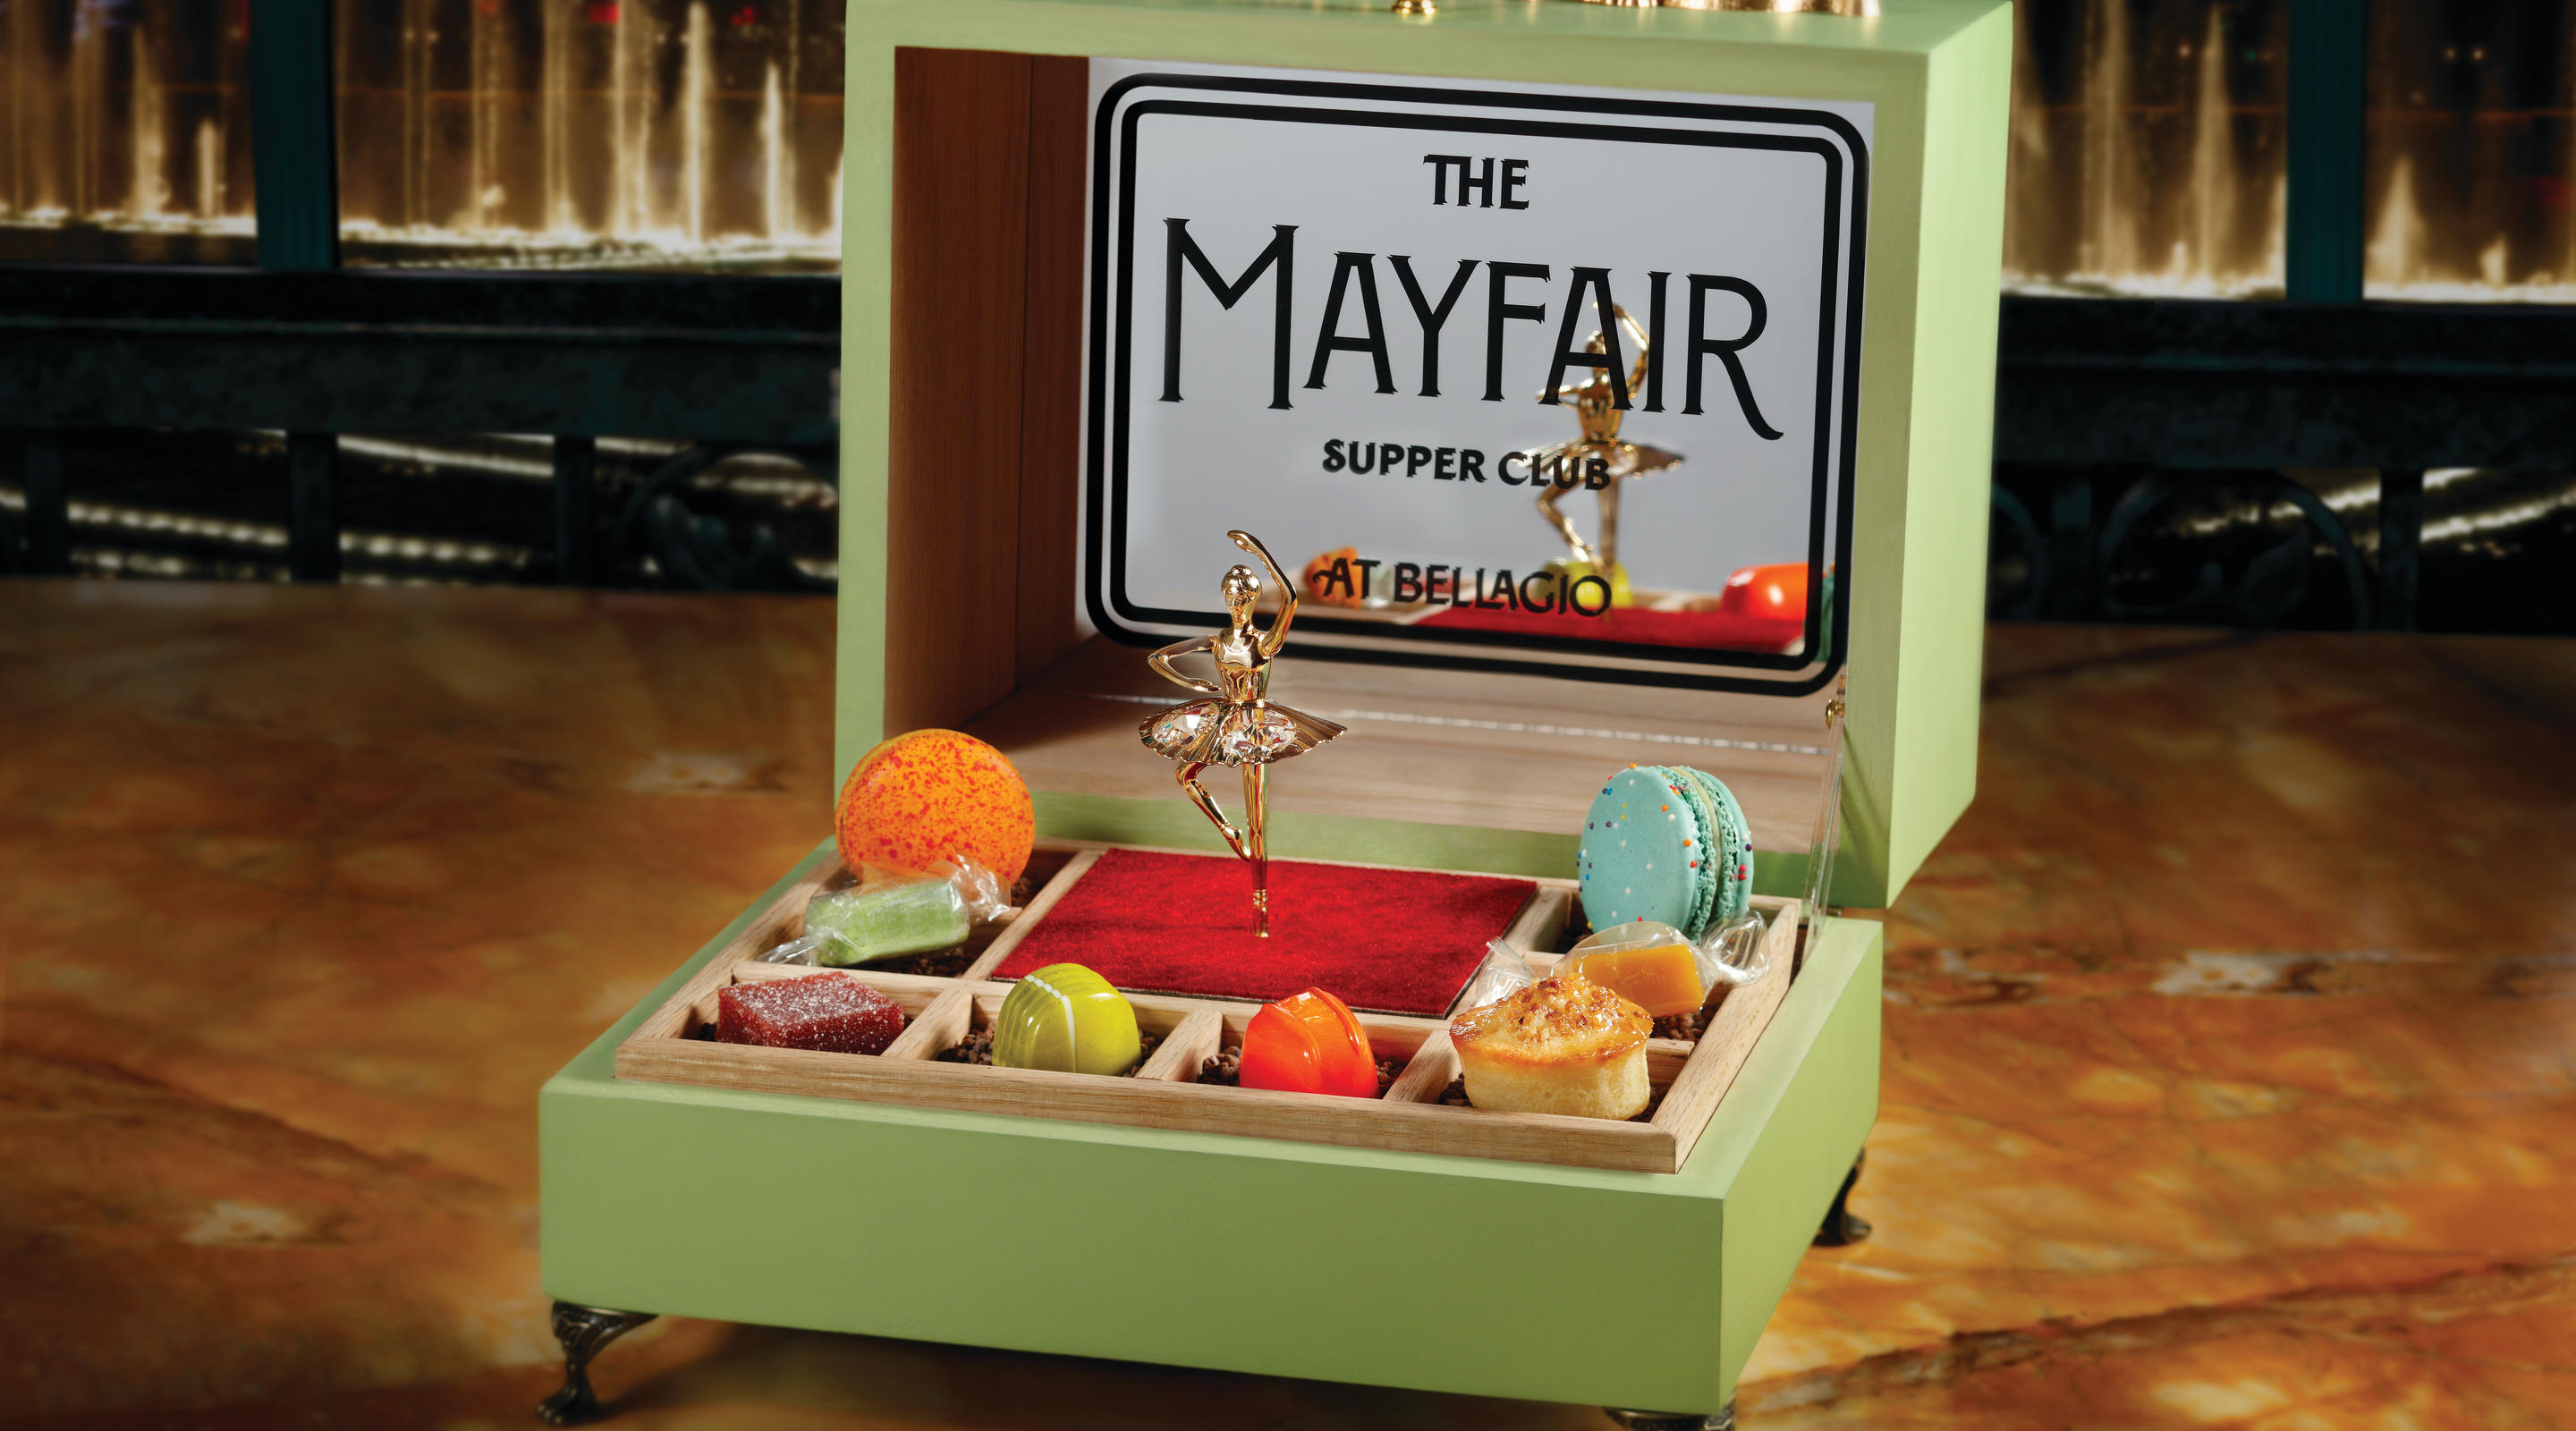 Mayfair Supper Club music box filled with confections.